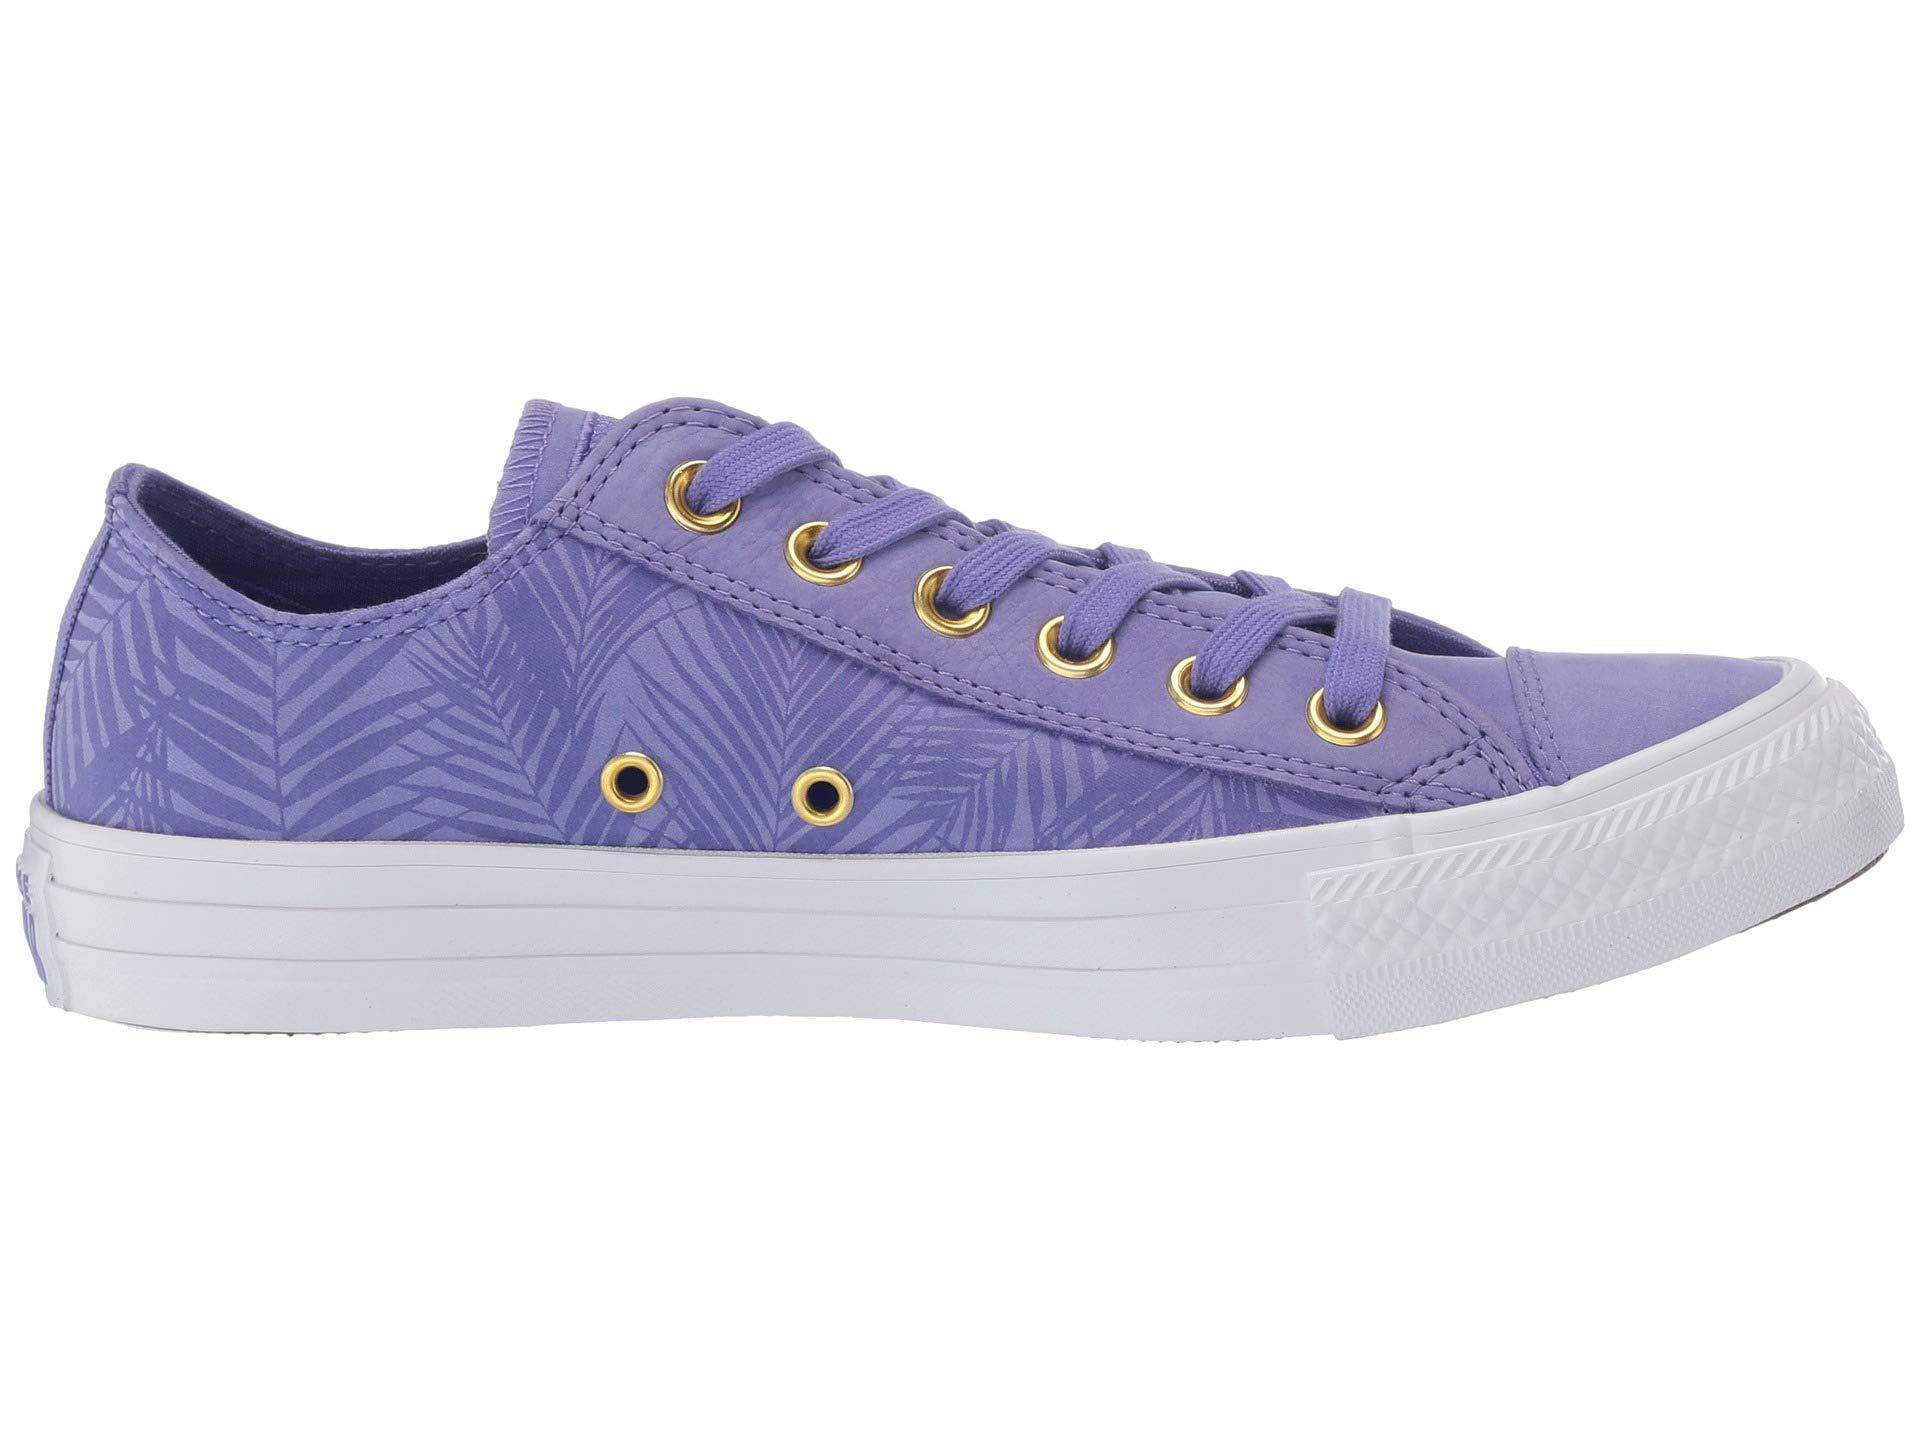 020b6ba8ead1 Lyst - Converse Chuck Taylor All Star Summer Palms - Ox (wild Lilac antique  Brass white) Women s Classic Shoes in Purple